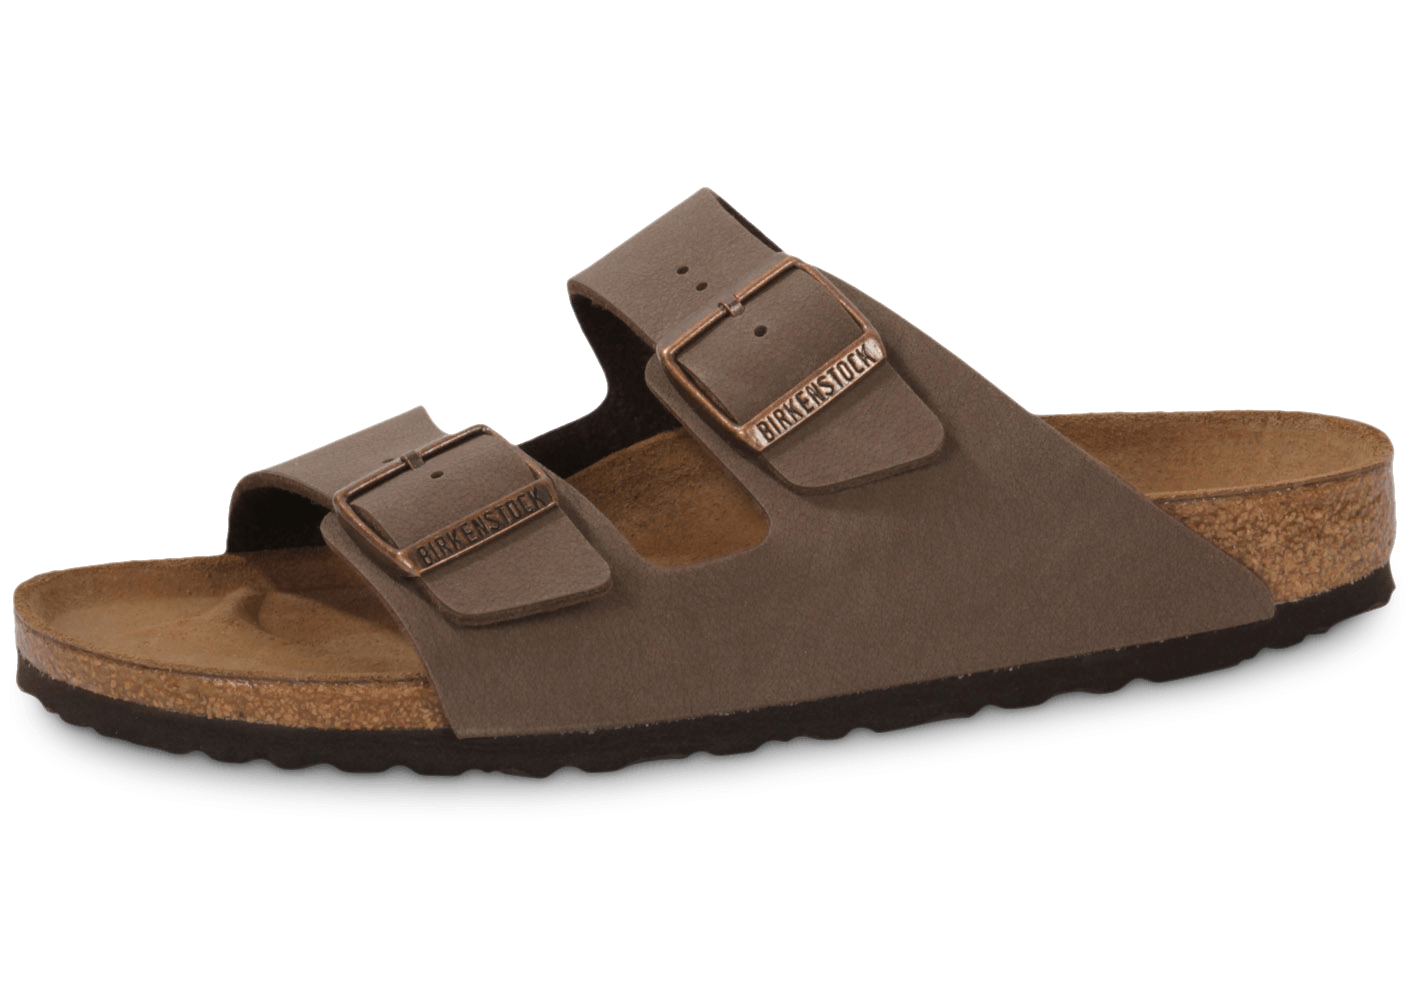 birkenstock arizona mocca chaussures homme chausport. Black Bedroom Furniture Sets. Home Design Ideas